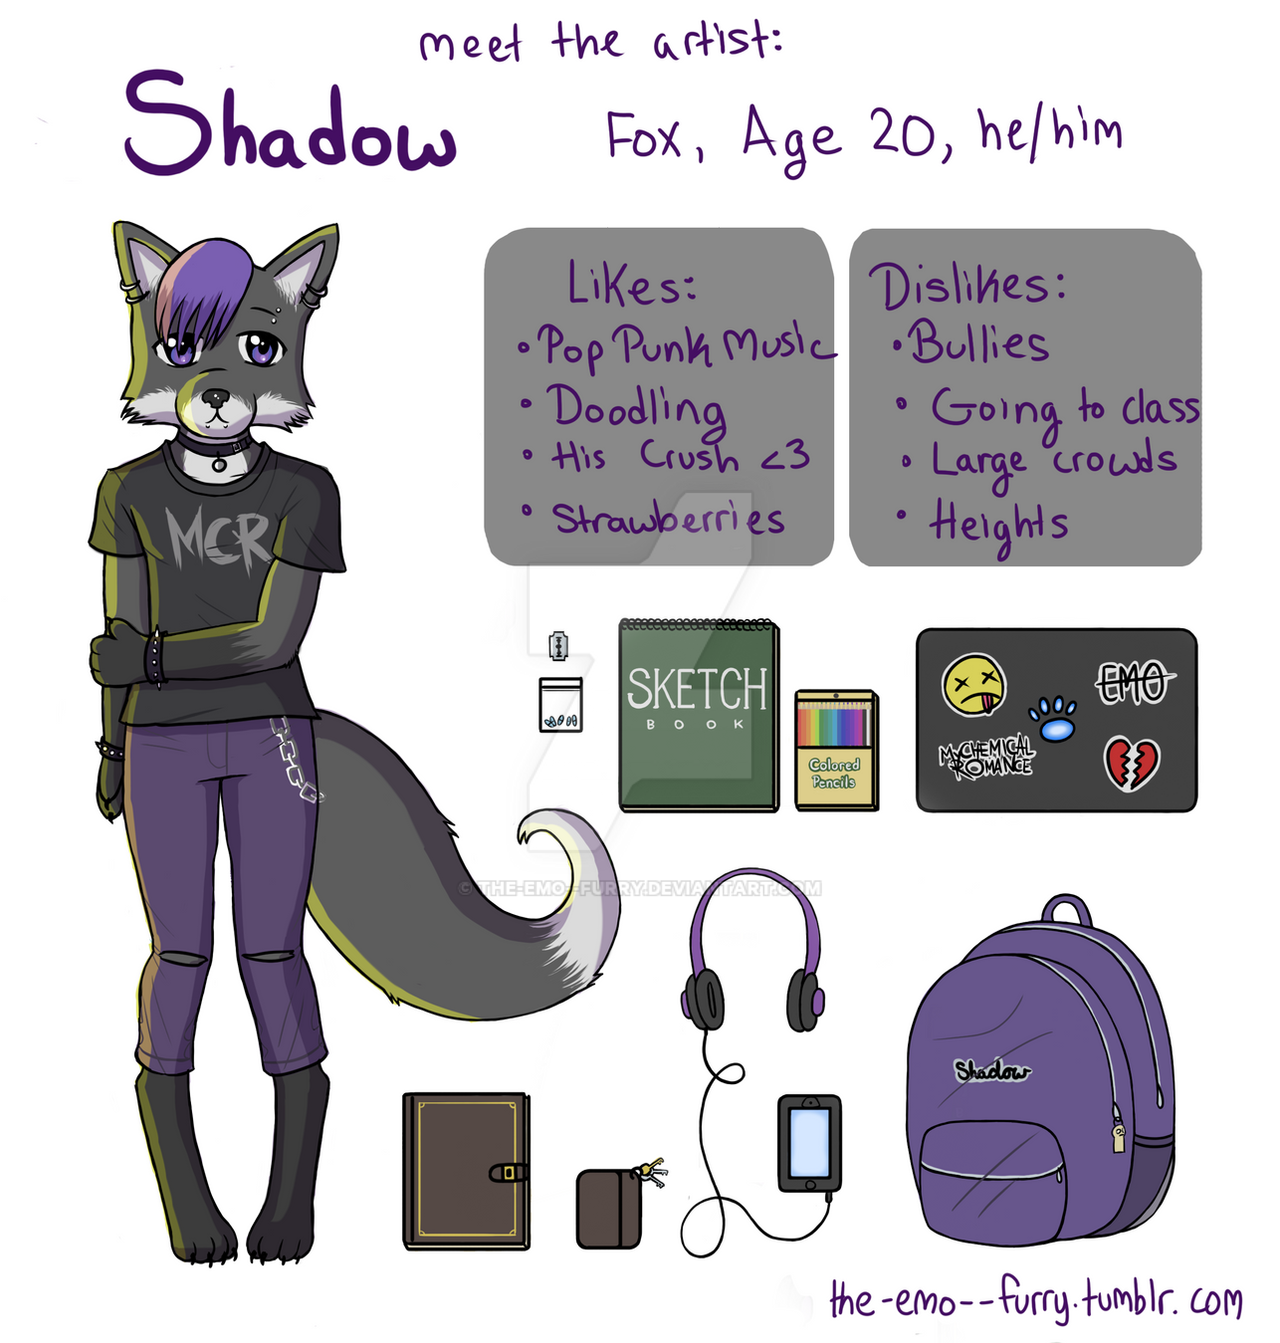 Meet the Artist: Shadow by the-emo--furry on DeviantArt